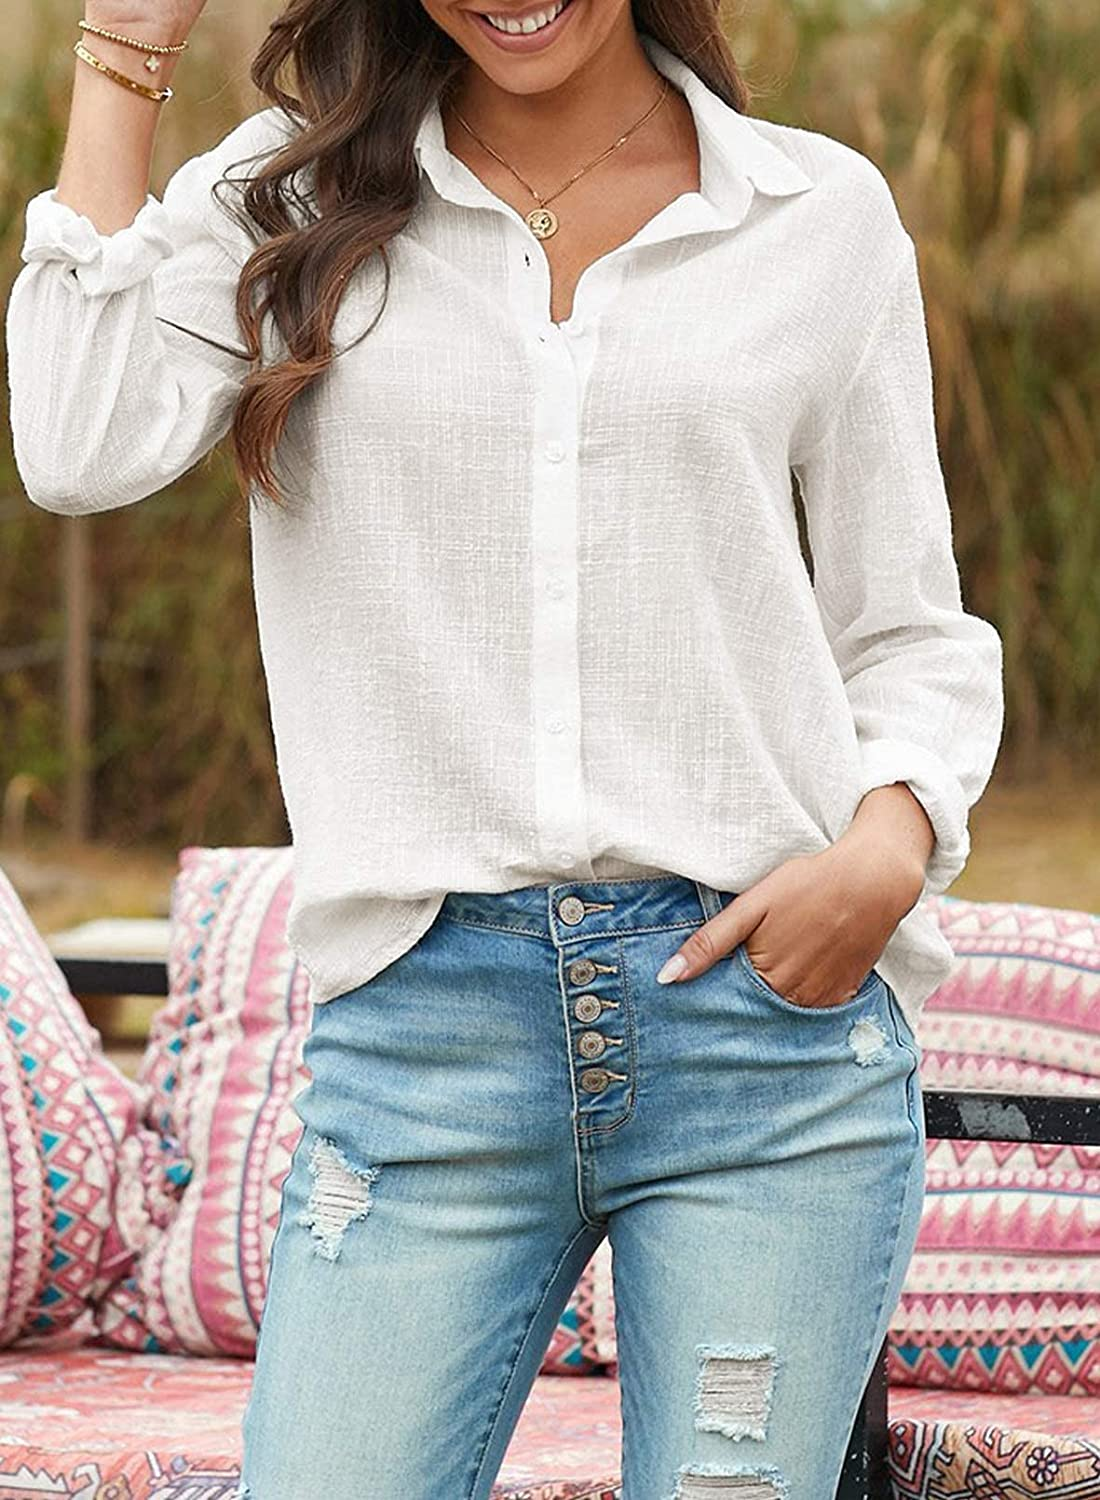 Women's Button Down Blouse Shirts Roll up Sleeve Solid Color Casual Work Tops